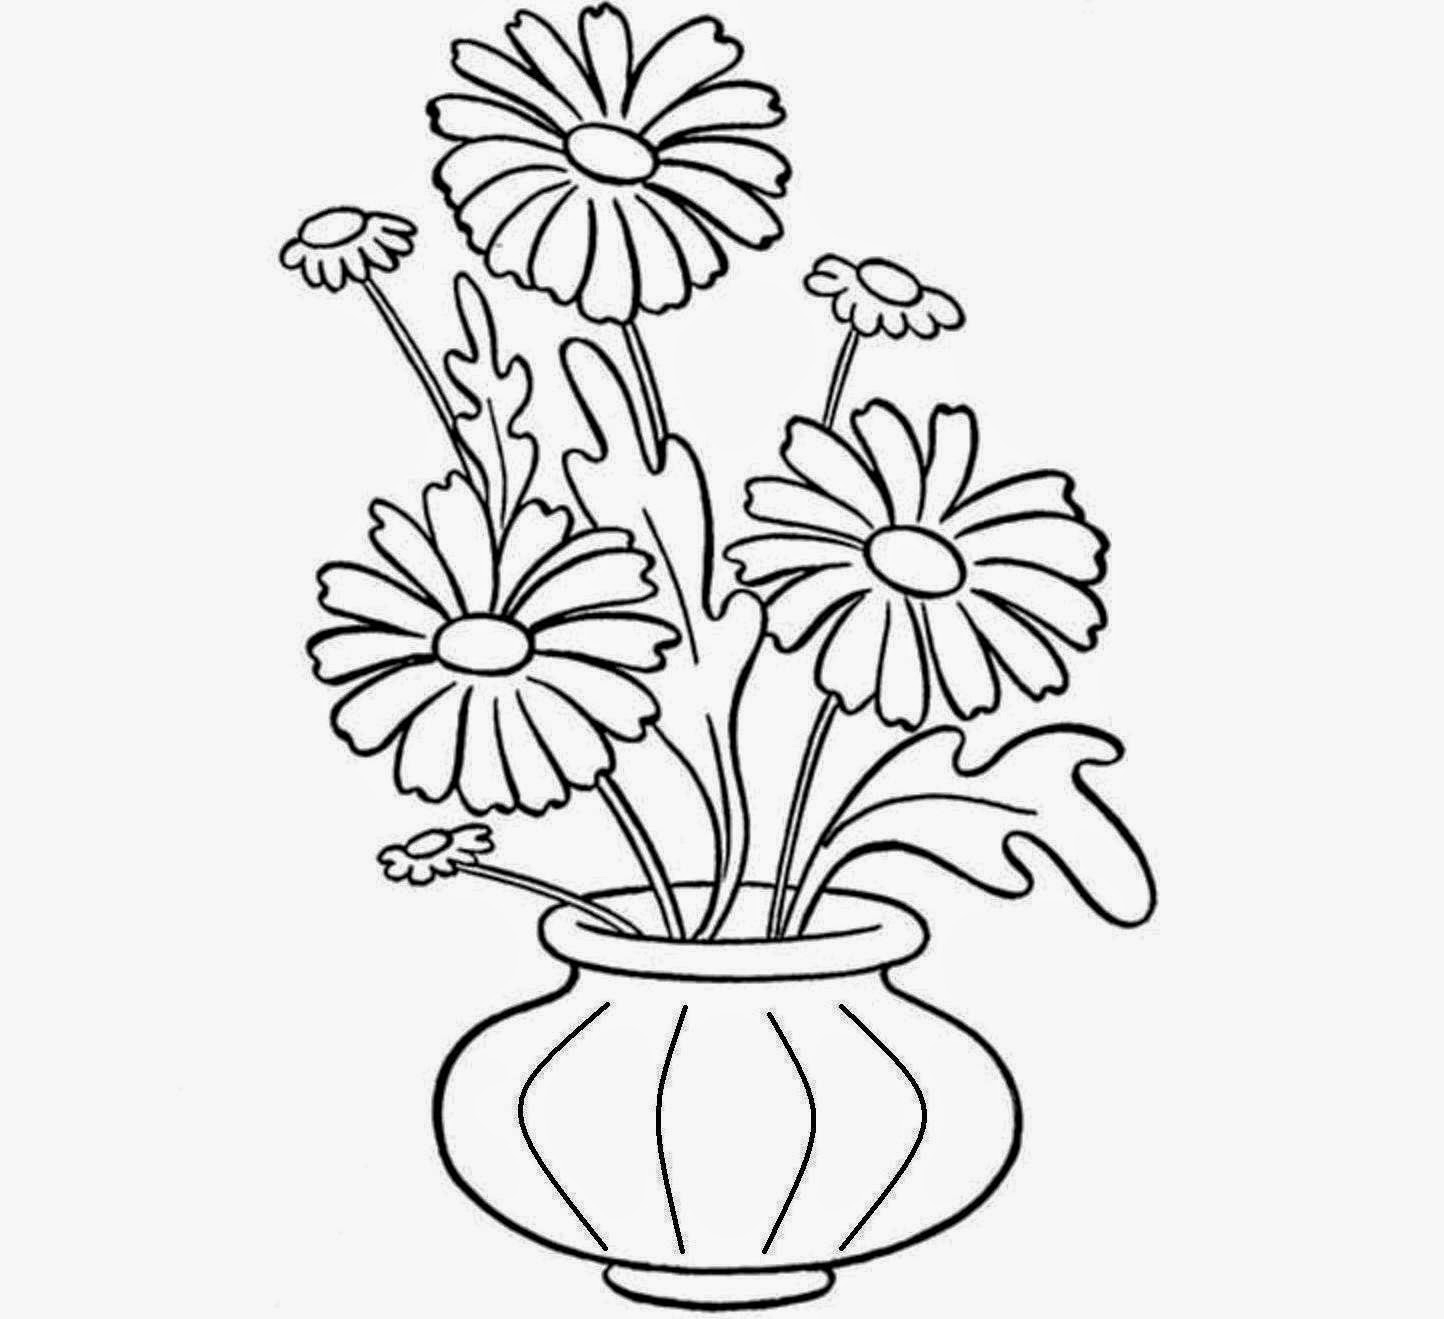 1444x1319 Easy Pencil Drawings Of Flower For Middle Kid Drawing Tutorial